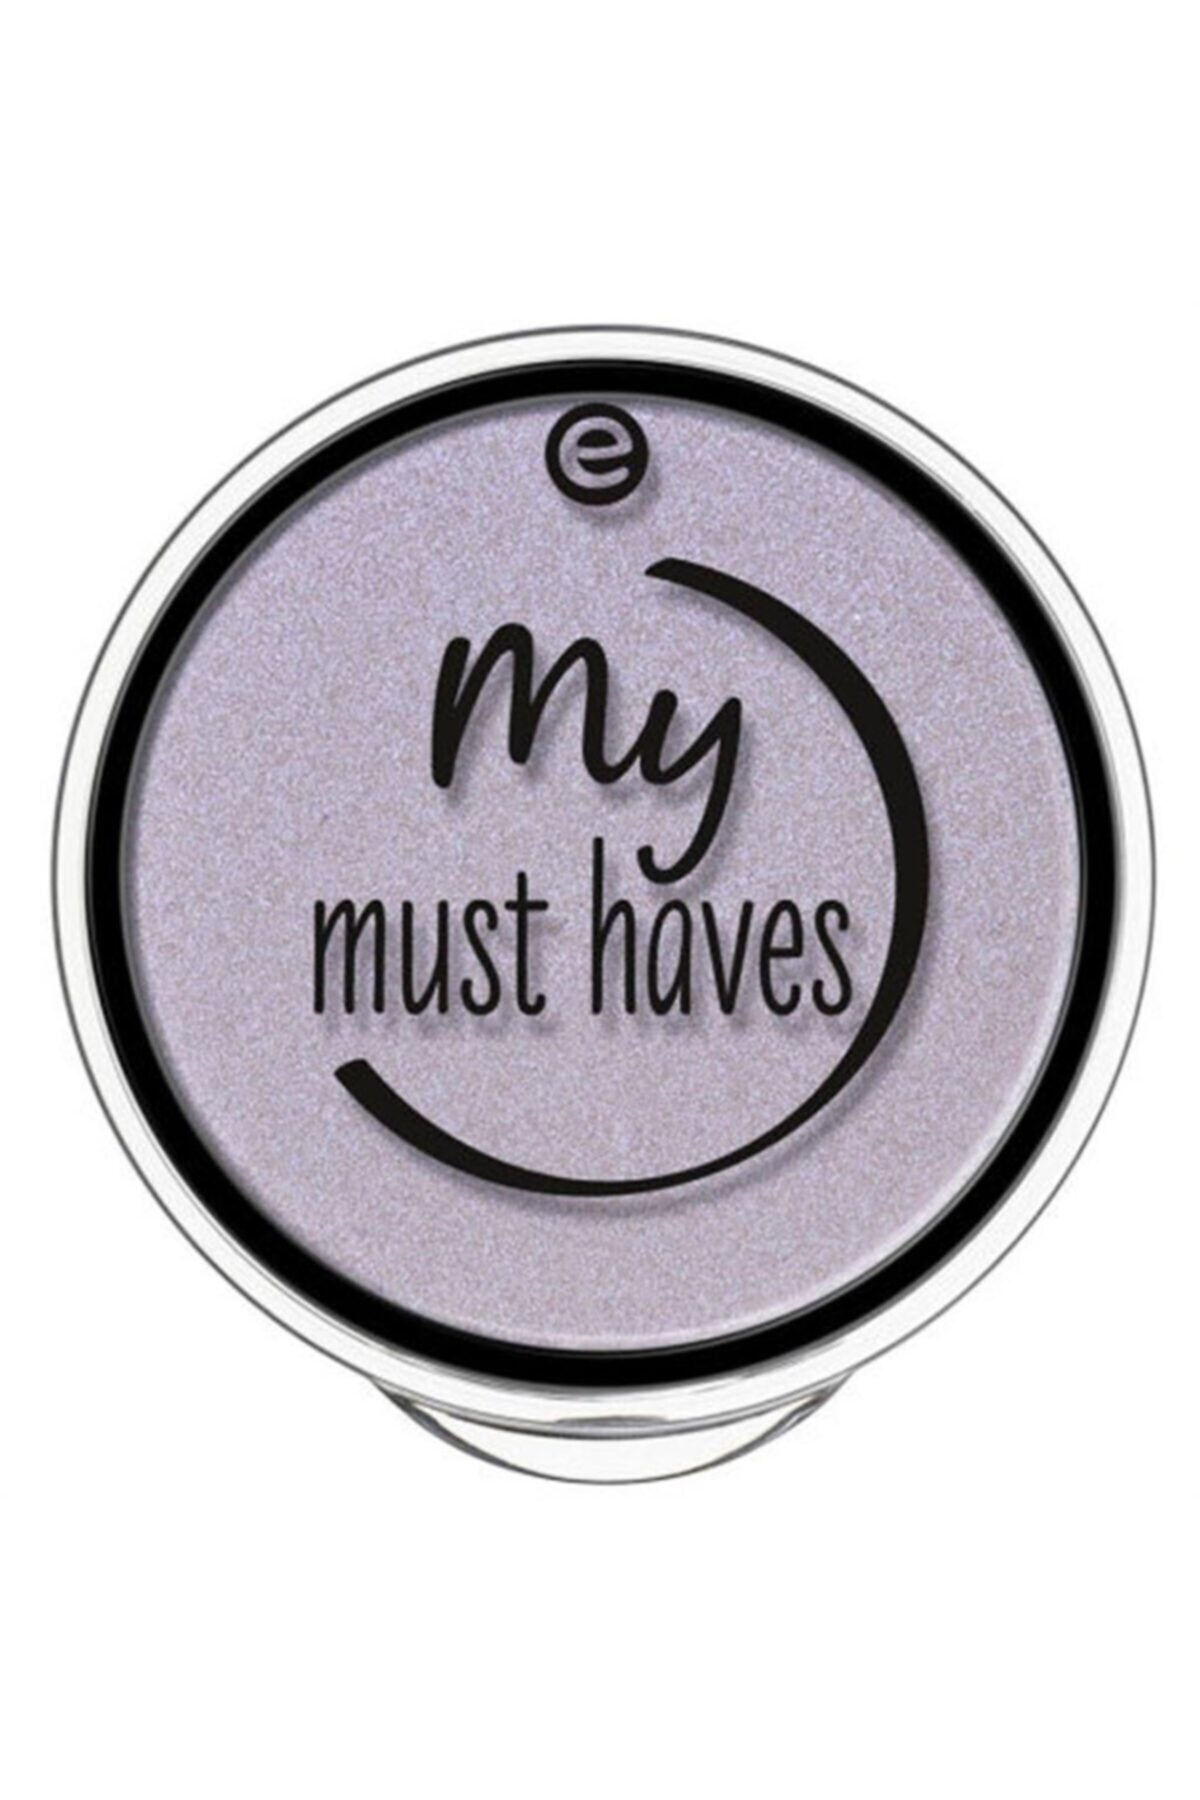 Essence Toz Pudra - My Must Haves Holo Powder 3 2 g 2